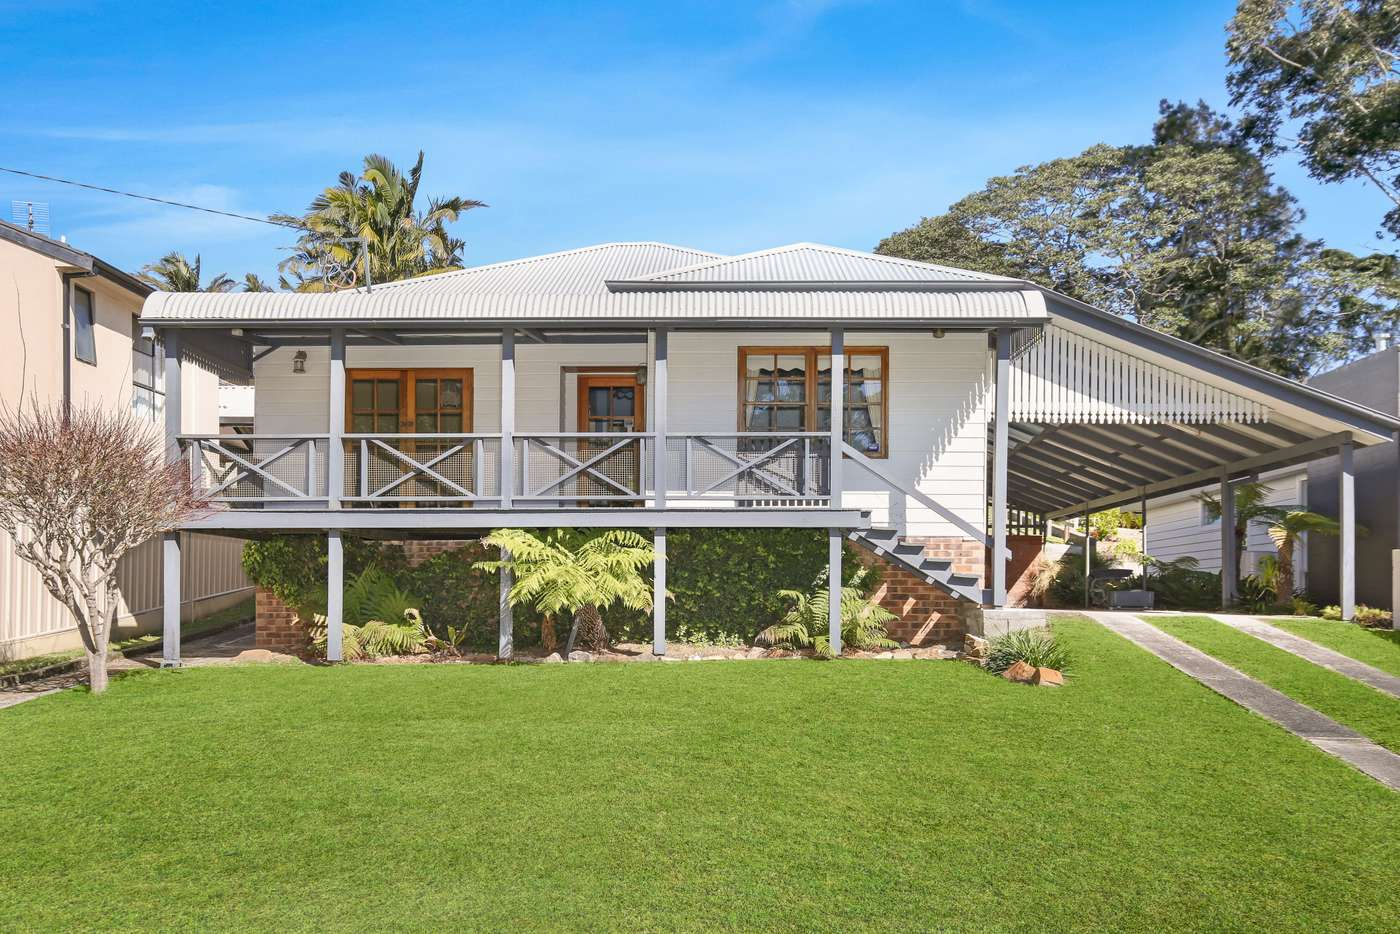 Main view of Homely house listing, 35 Poulter Street, West Wollongong NSW 2500